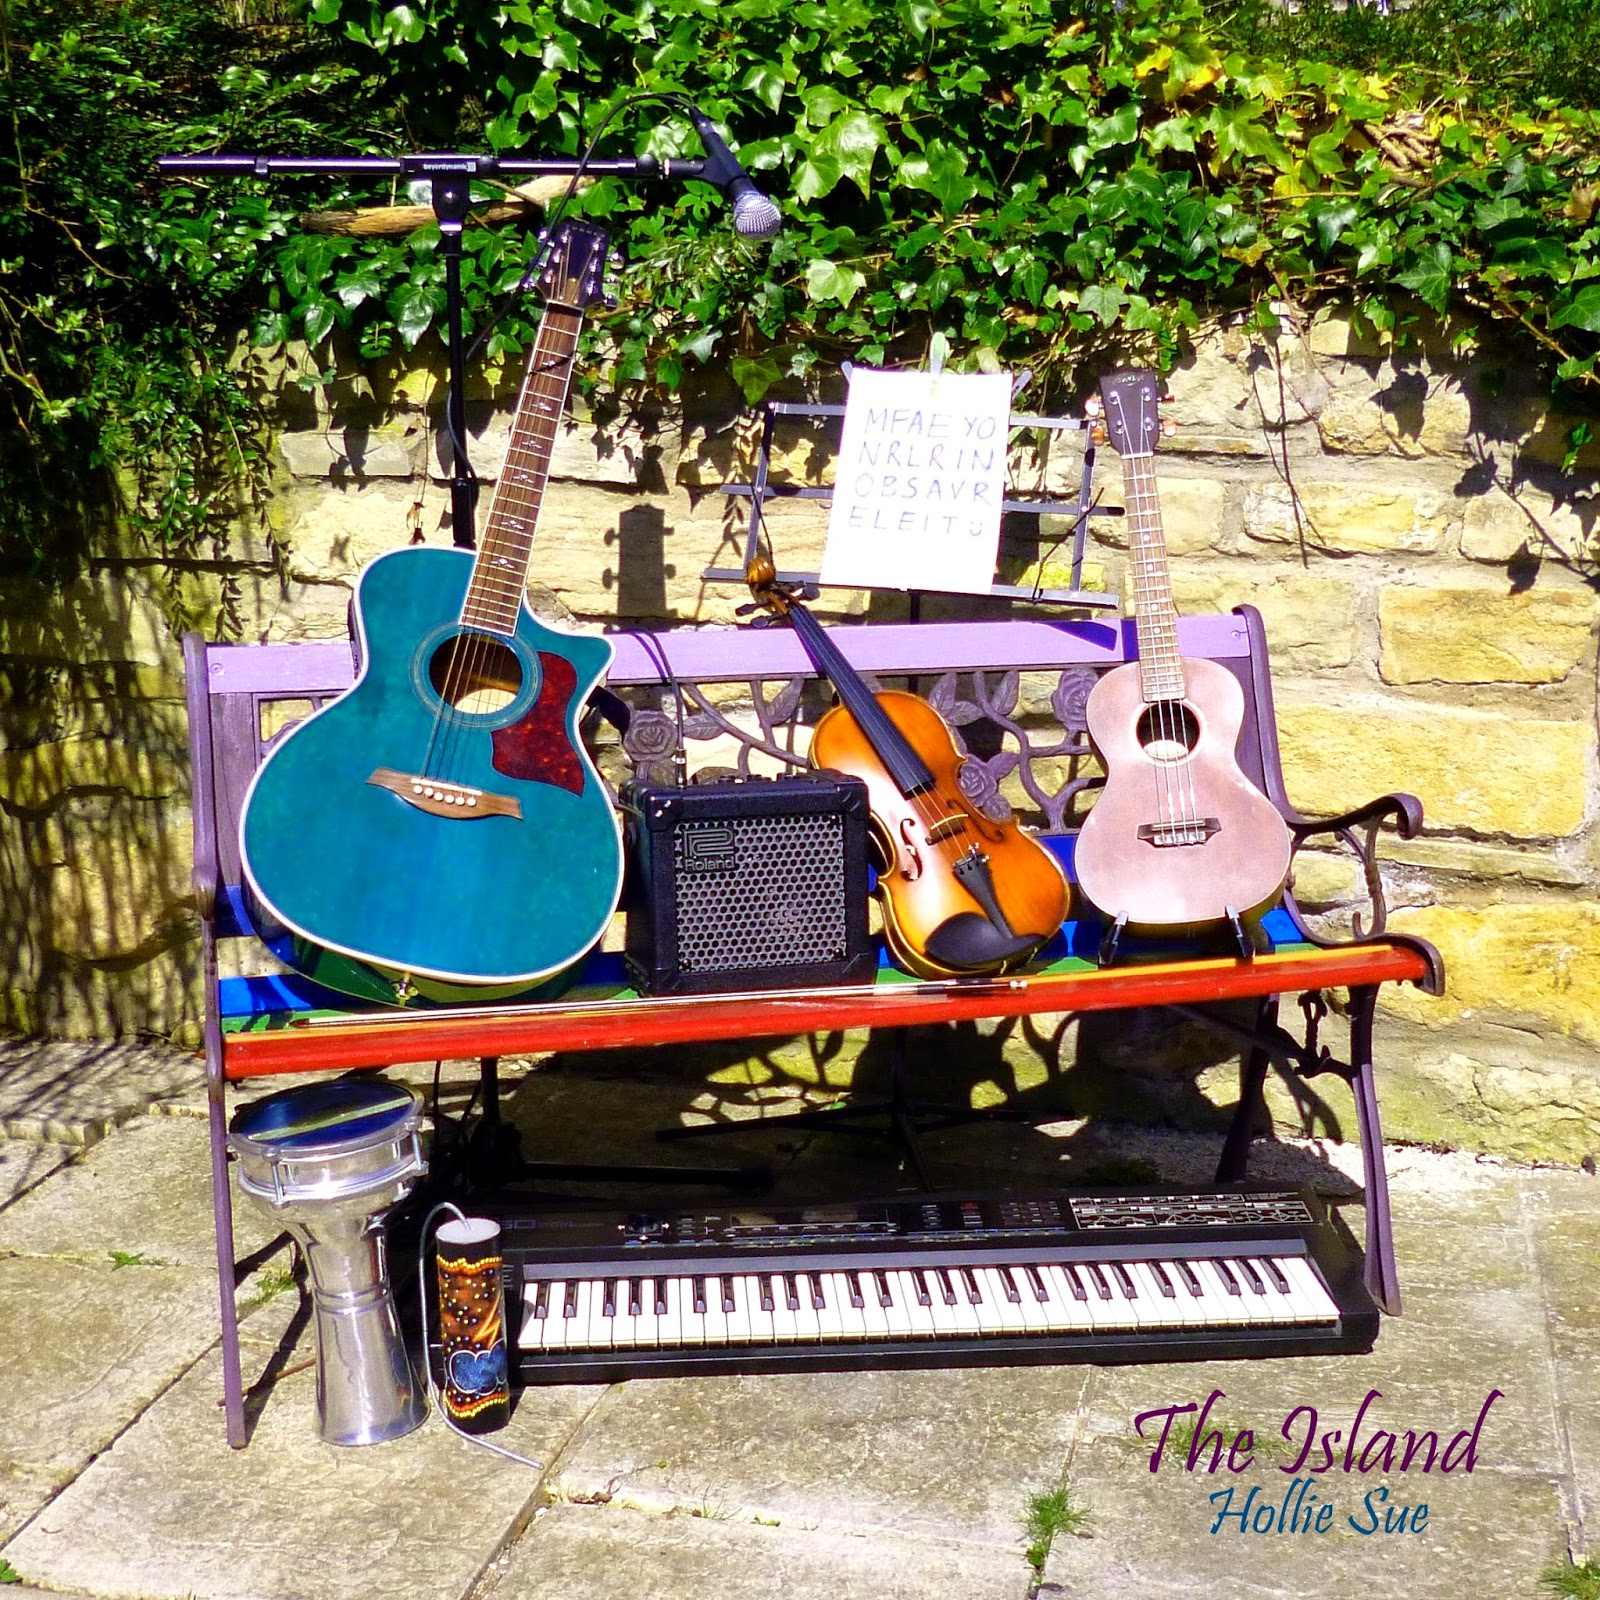 The Island Album Cover